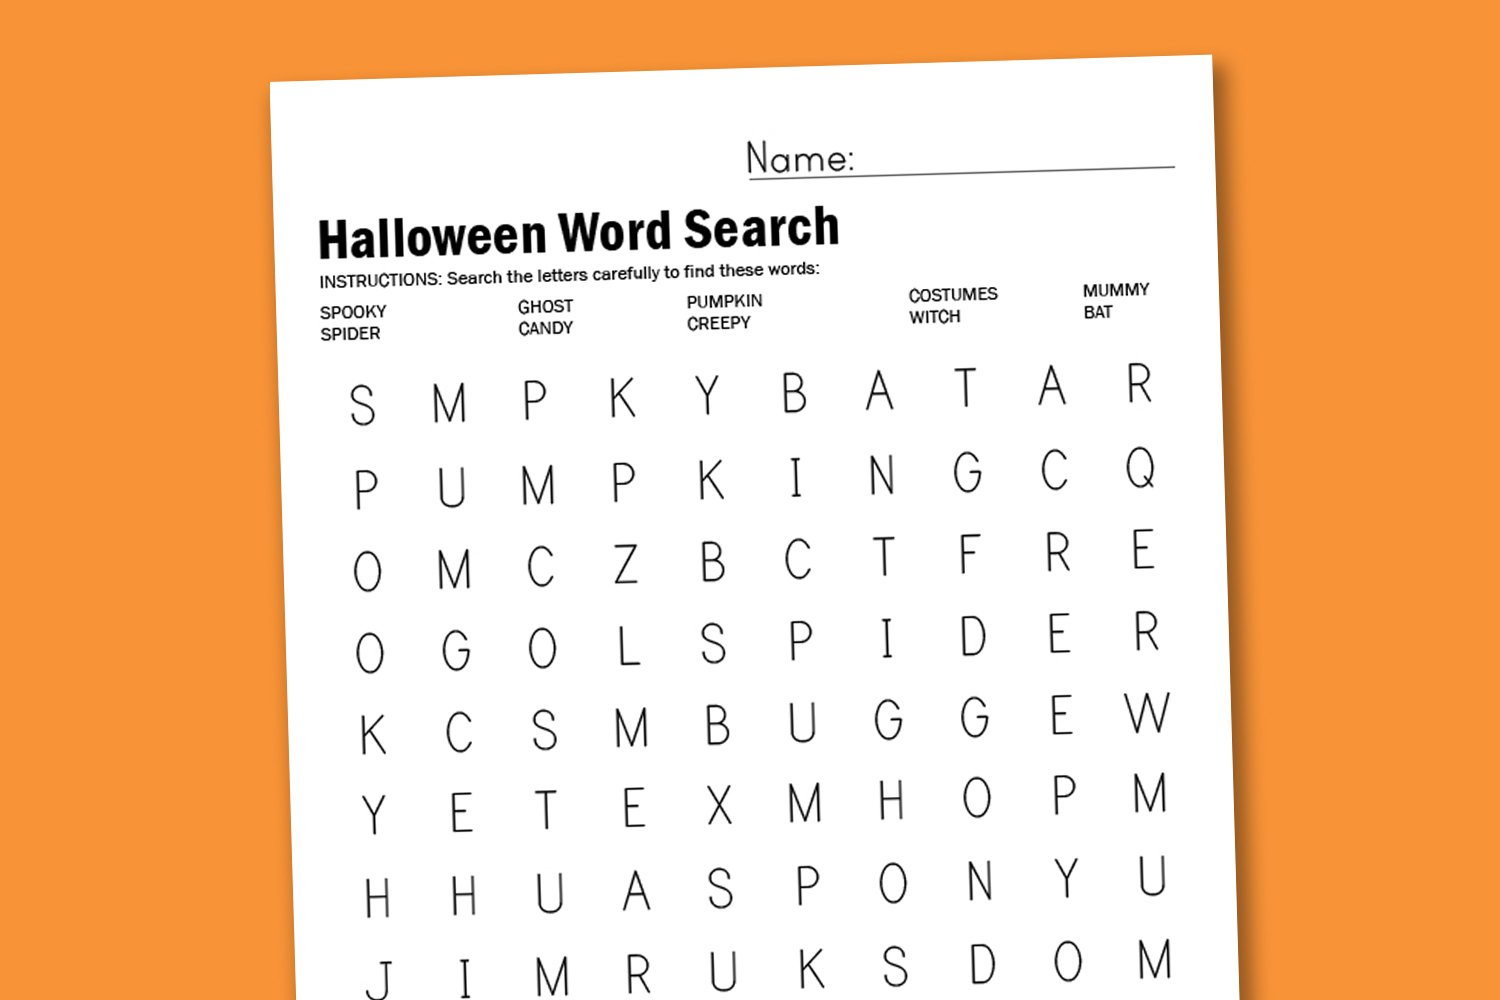 Worksheet Wednesday: Halloween Word Search